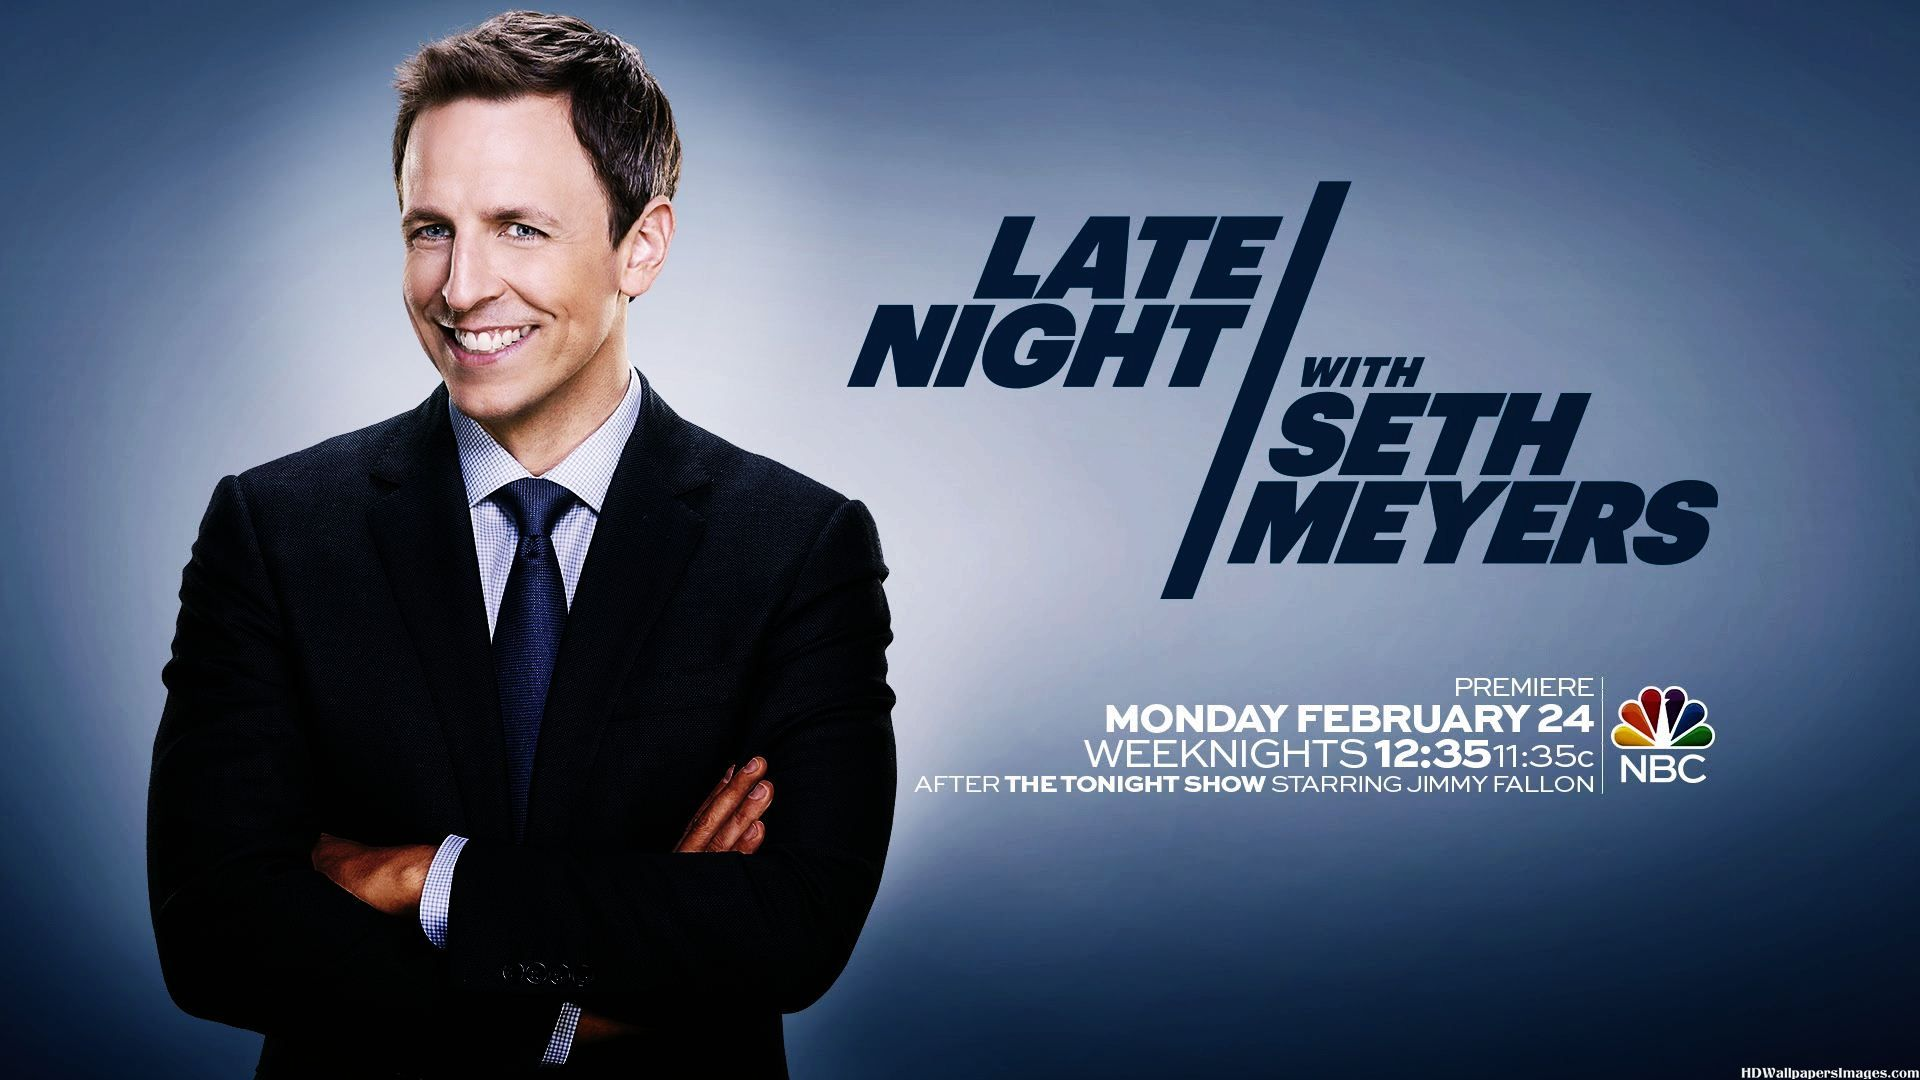 Late Night With Seth Meyers Production Listing